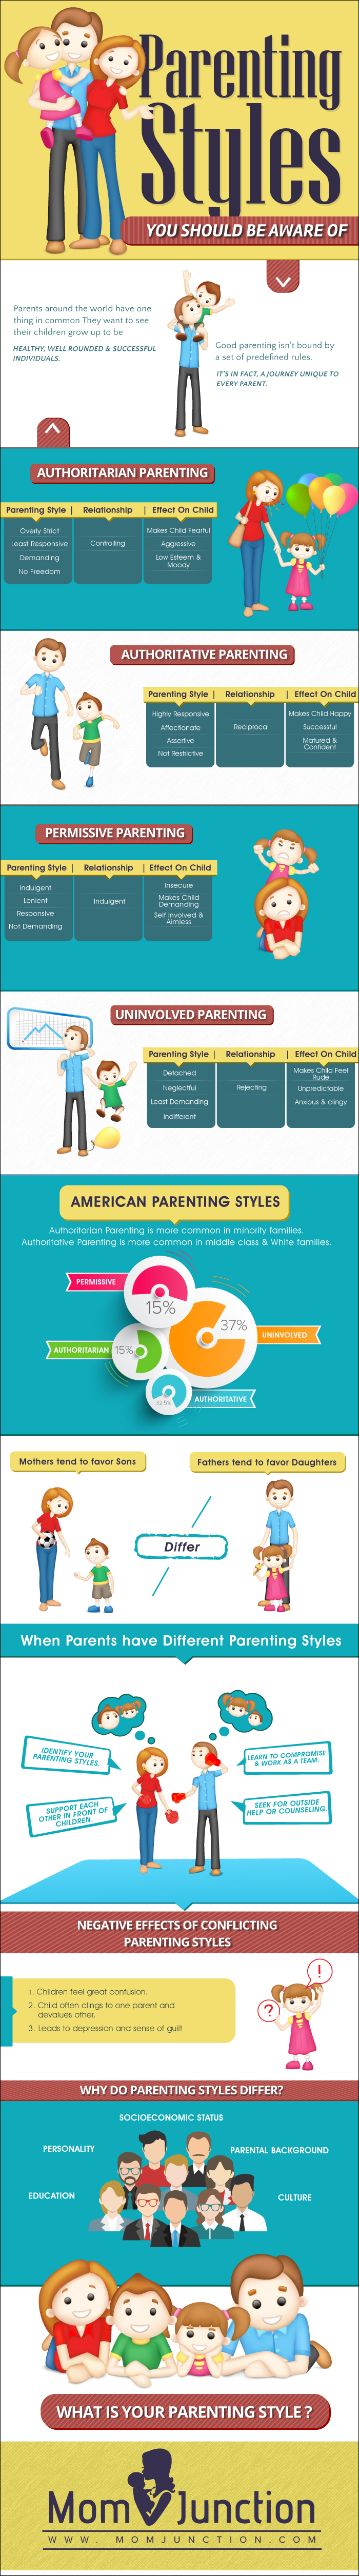 best parenting style every US citizen should know